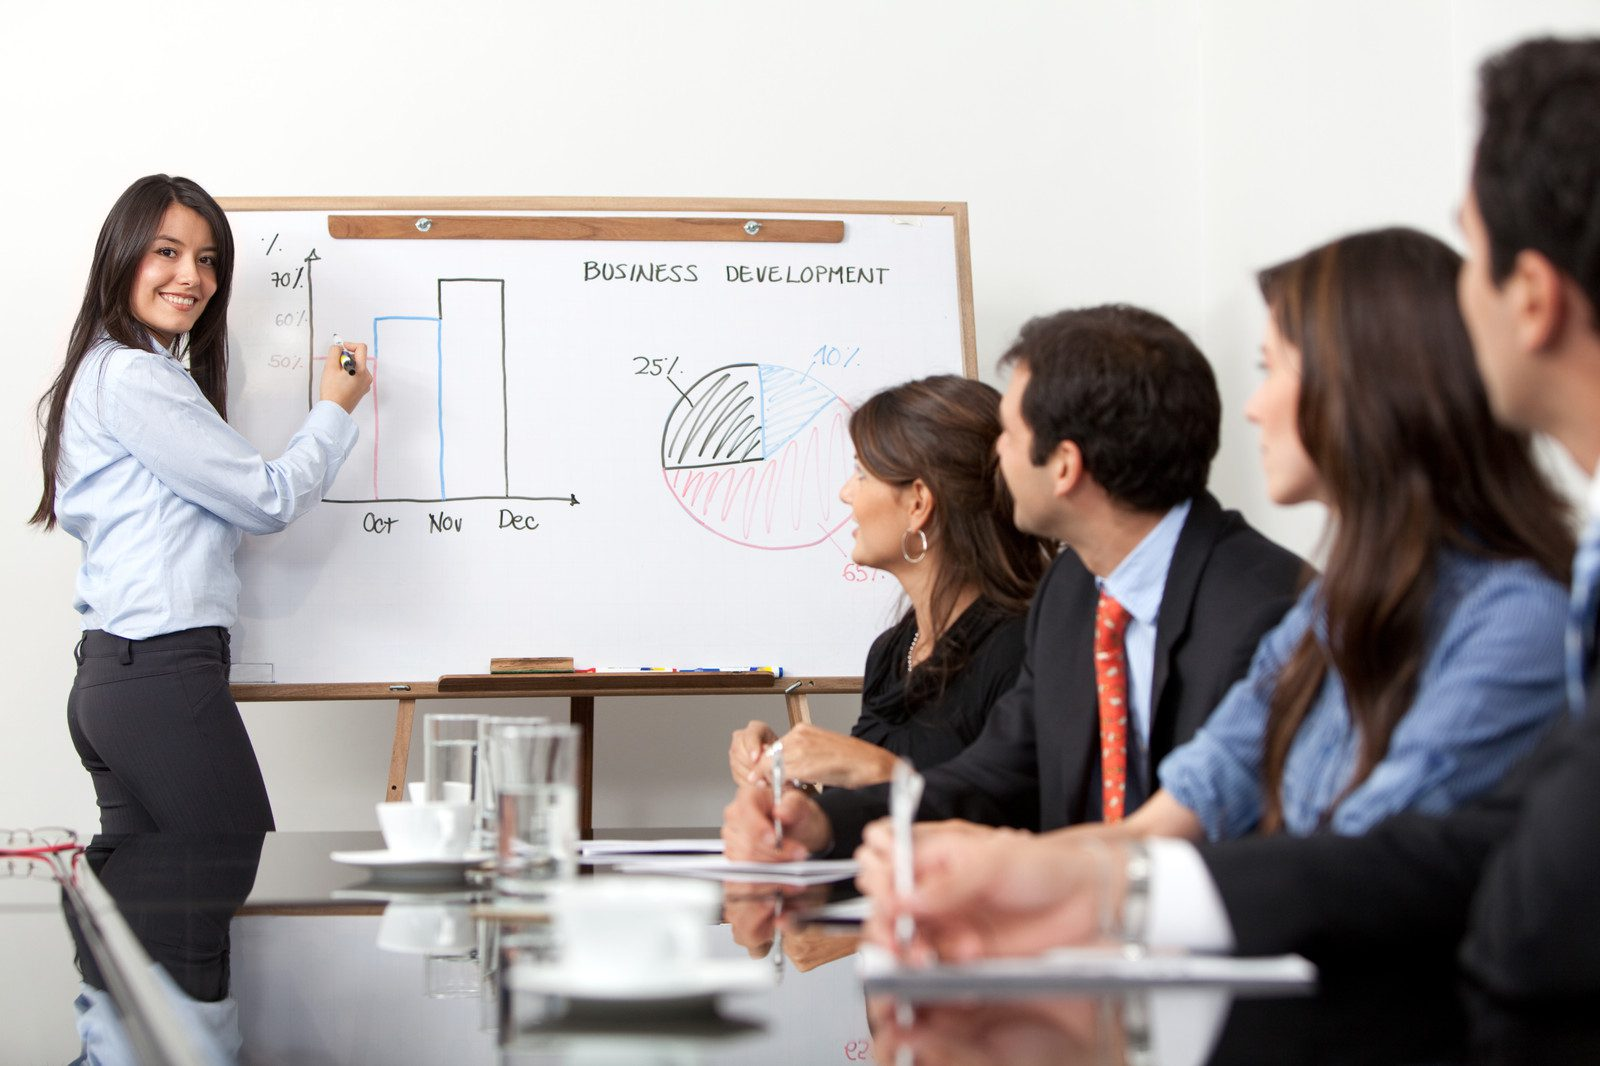 Woman Giving a Presentation with Visuals